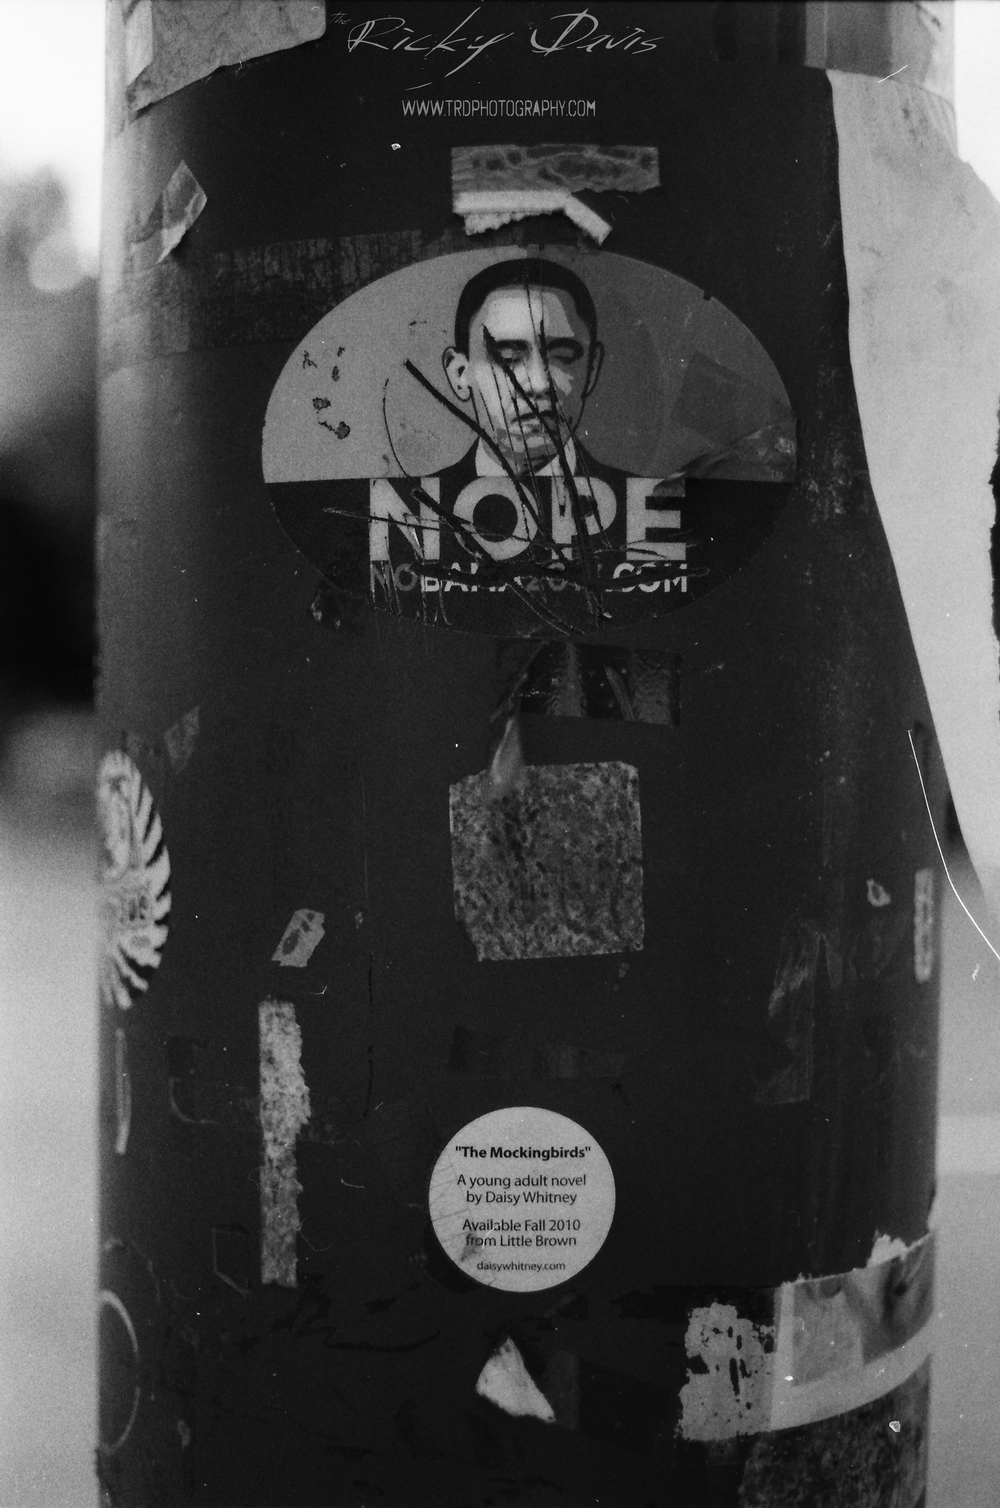 """Nope"" Lightpole in Chattanooga, TN - Film - Expired Neopan SS - Camera - Minolta XG 1 - Photographer Ricky Davis"